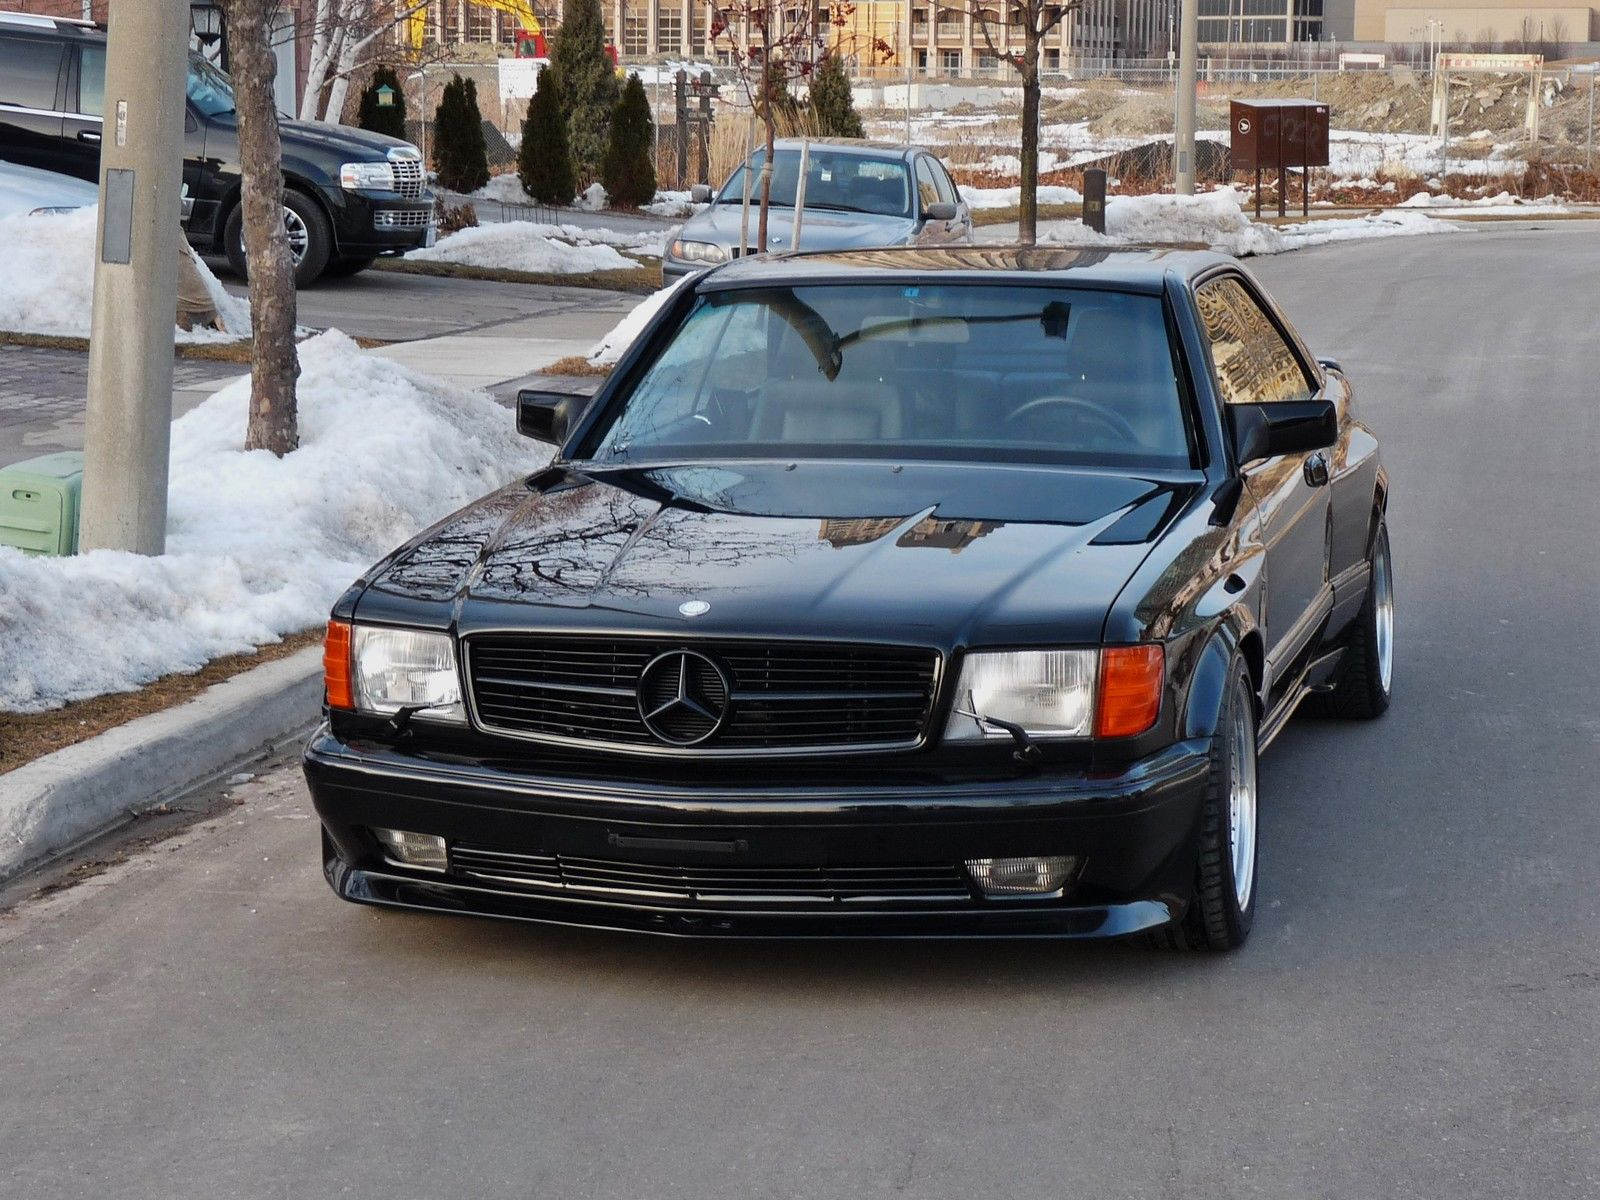 1990 Mercedes Benz 560sec Amg 6 0 Widebody [1600 X 1200] Mercedes_benz  Mercedes Transmission Diagram Mercedes 560sec Wiring Diagram